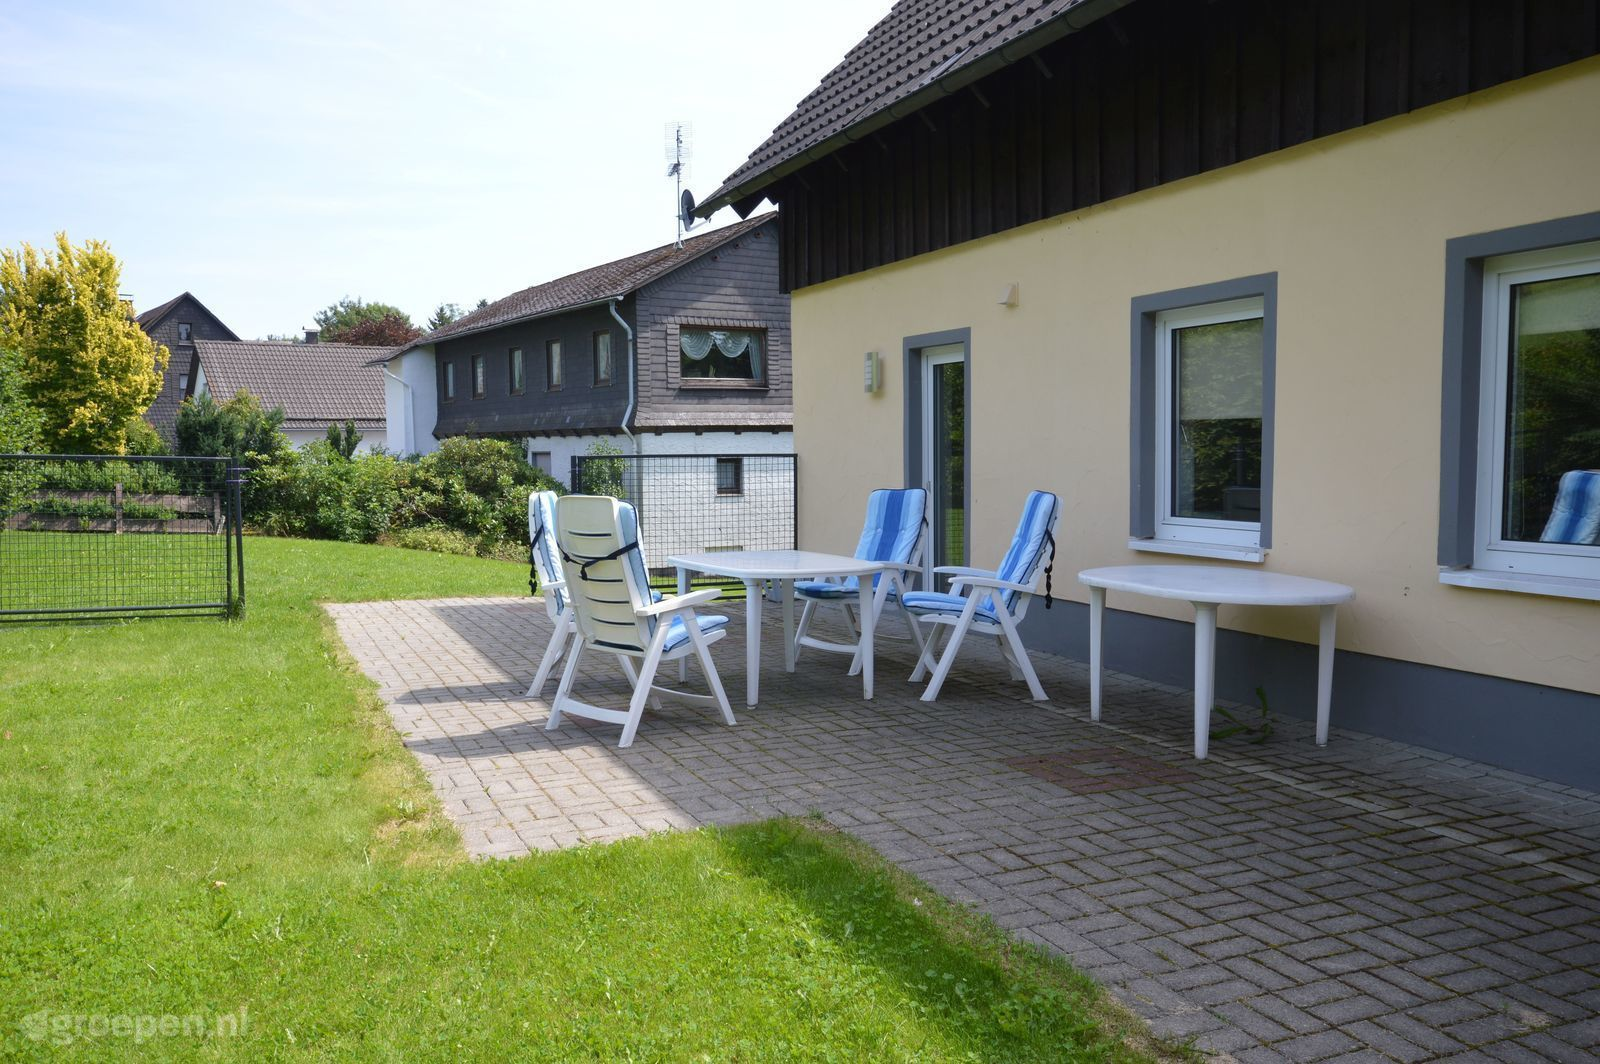 Group accommodation Winterberg-Mollseifen